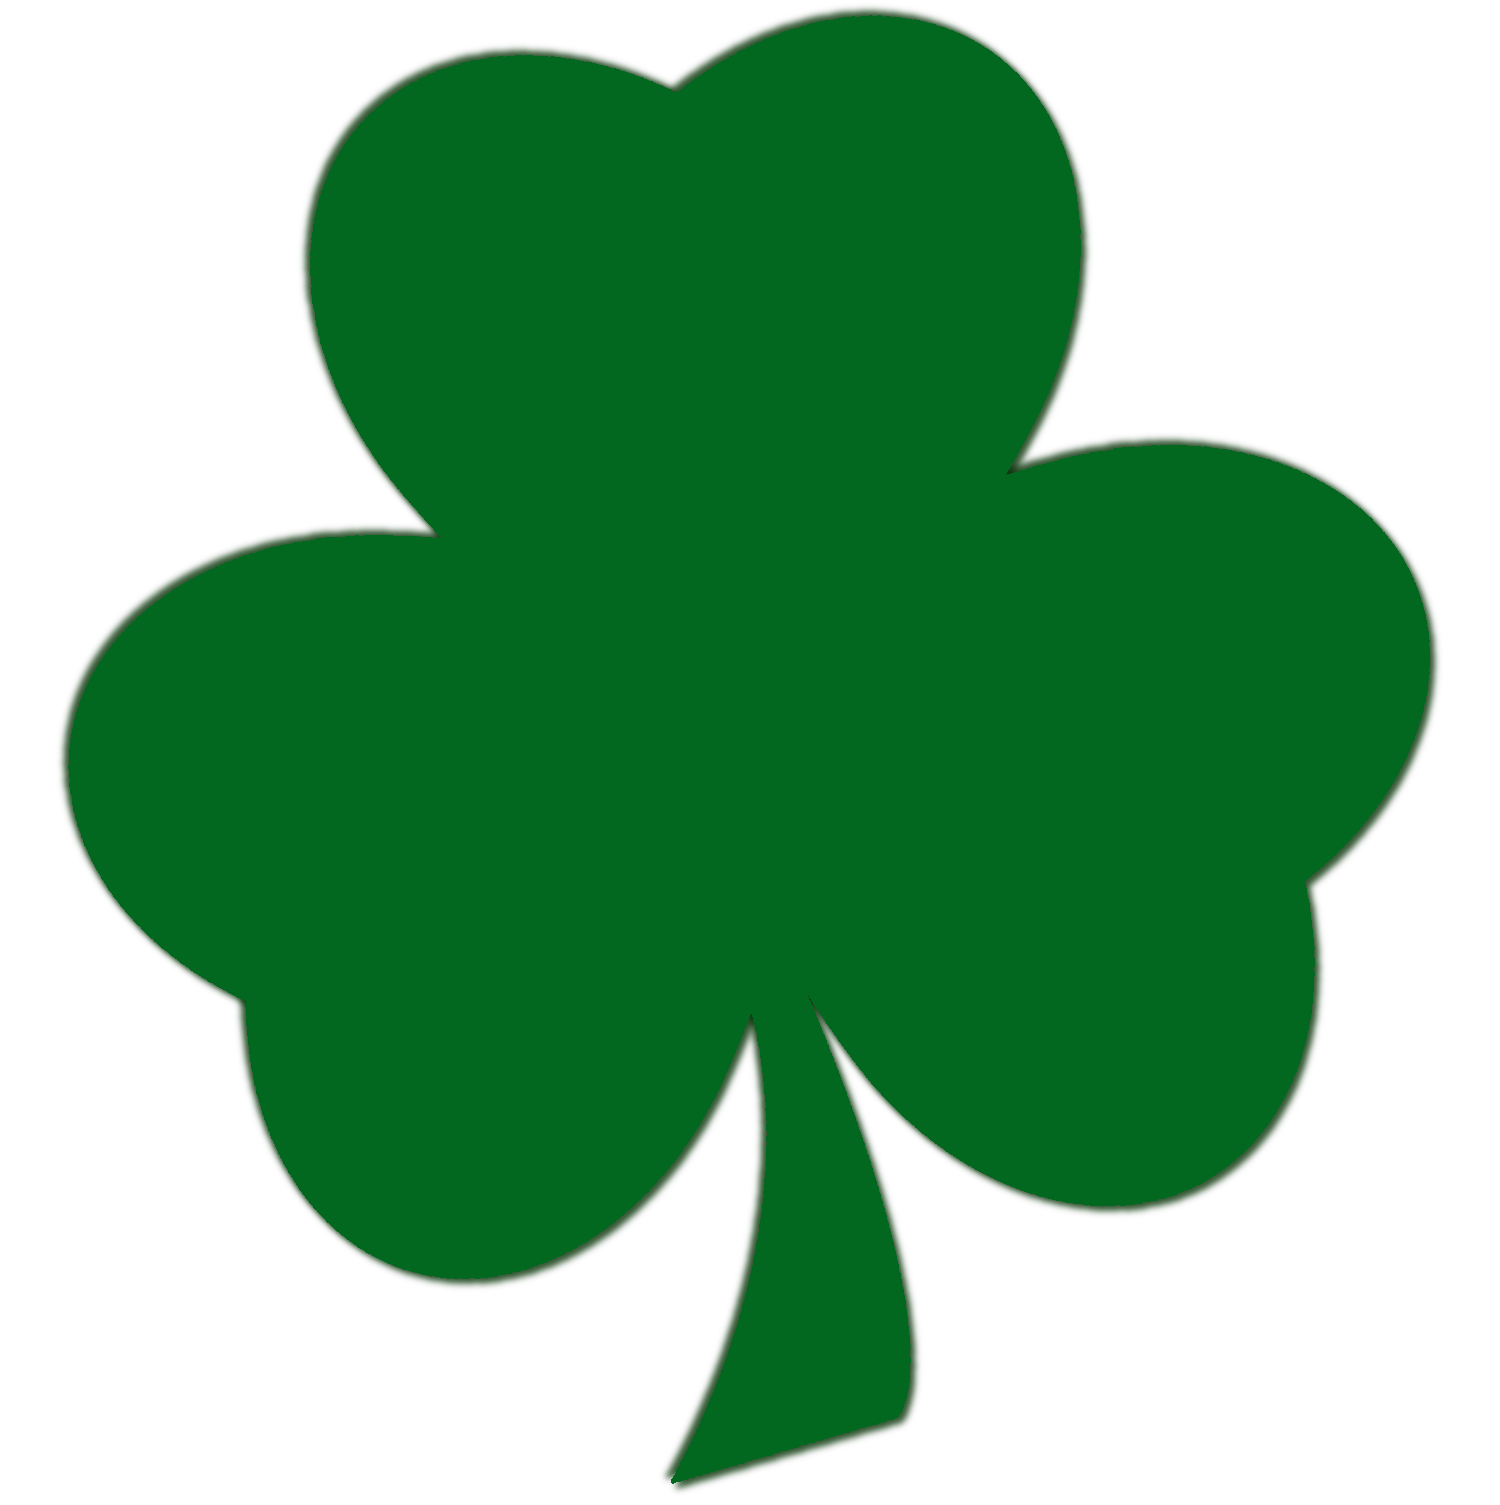 St patricks day clovers clipart.